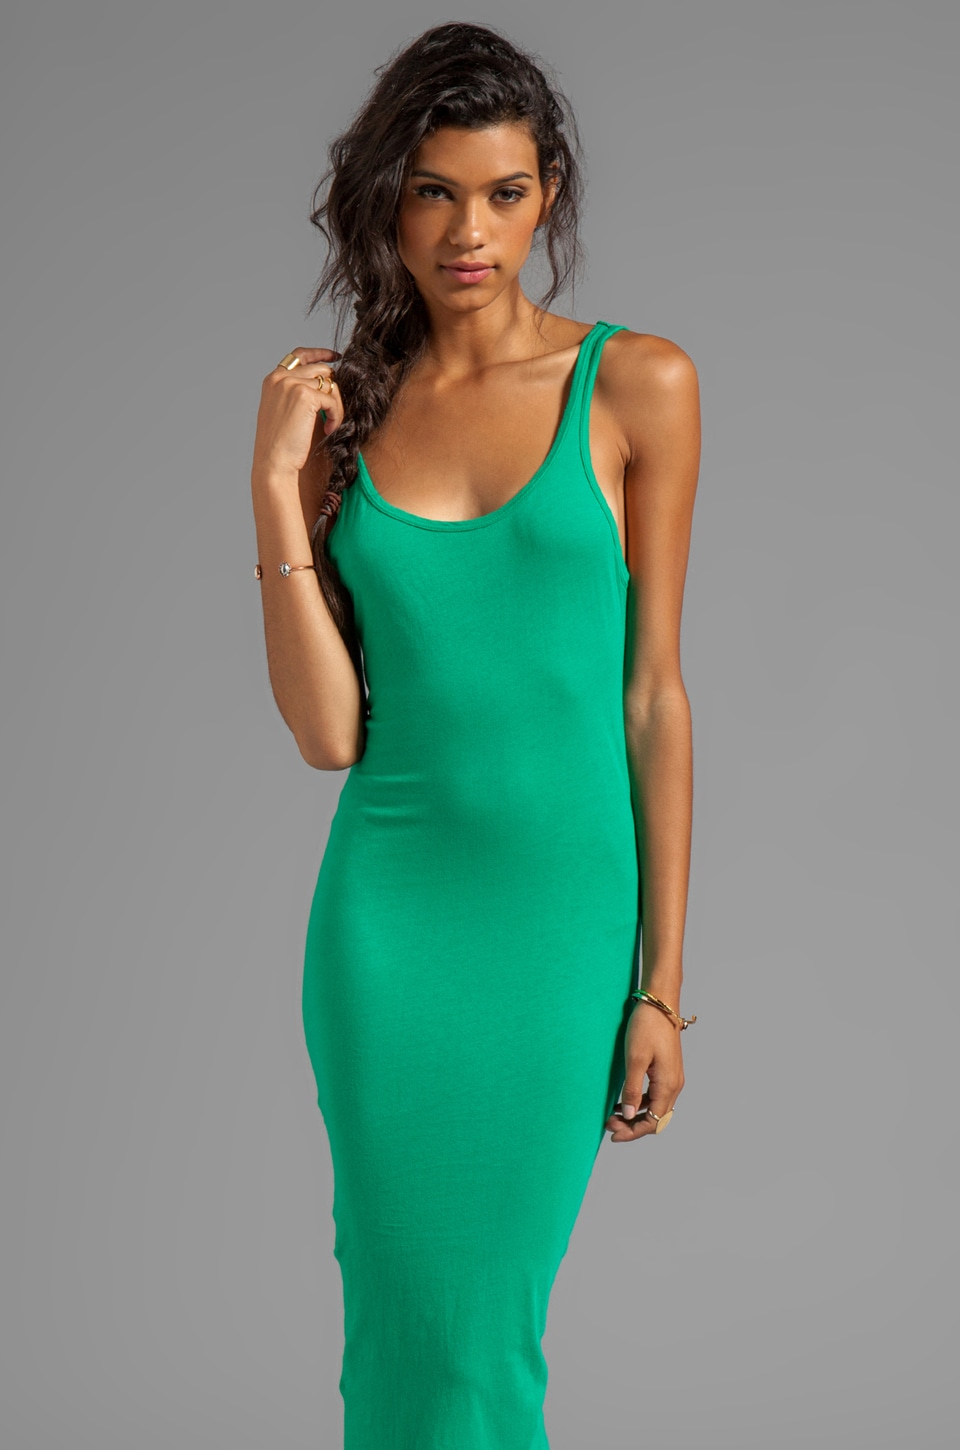 291 Scoop Back Dress in Rainforest